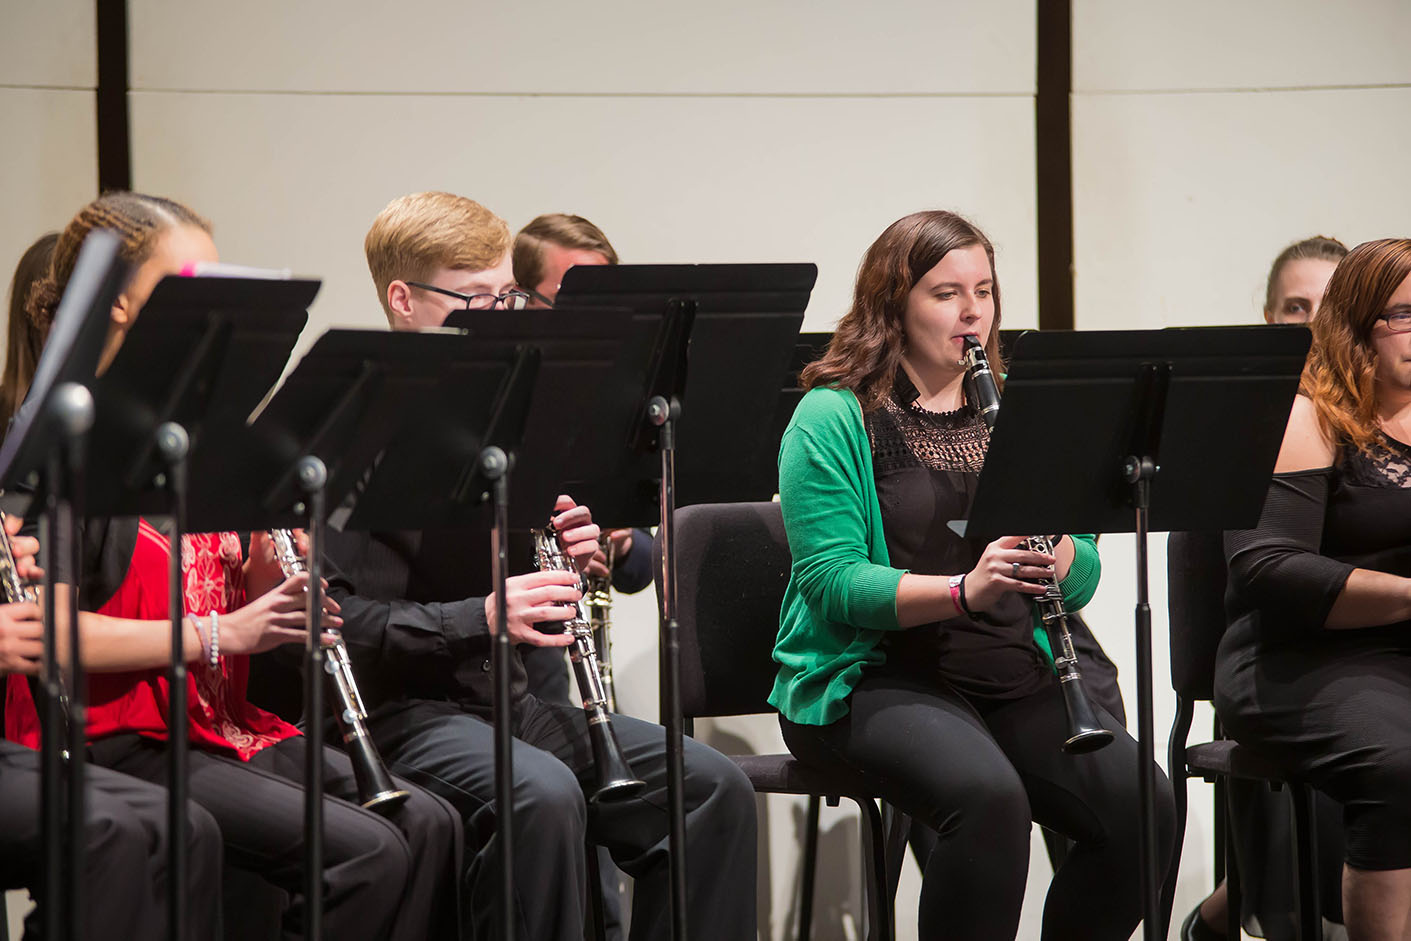 Music students play clarinets in Mabry Concert Hall